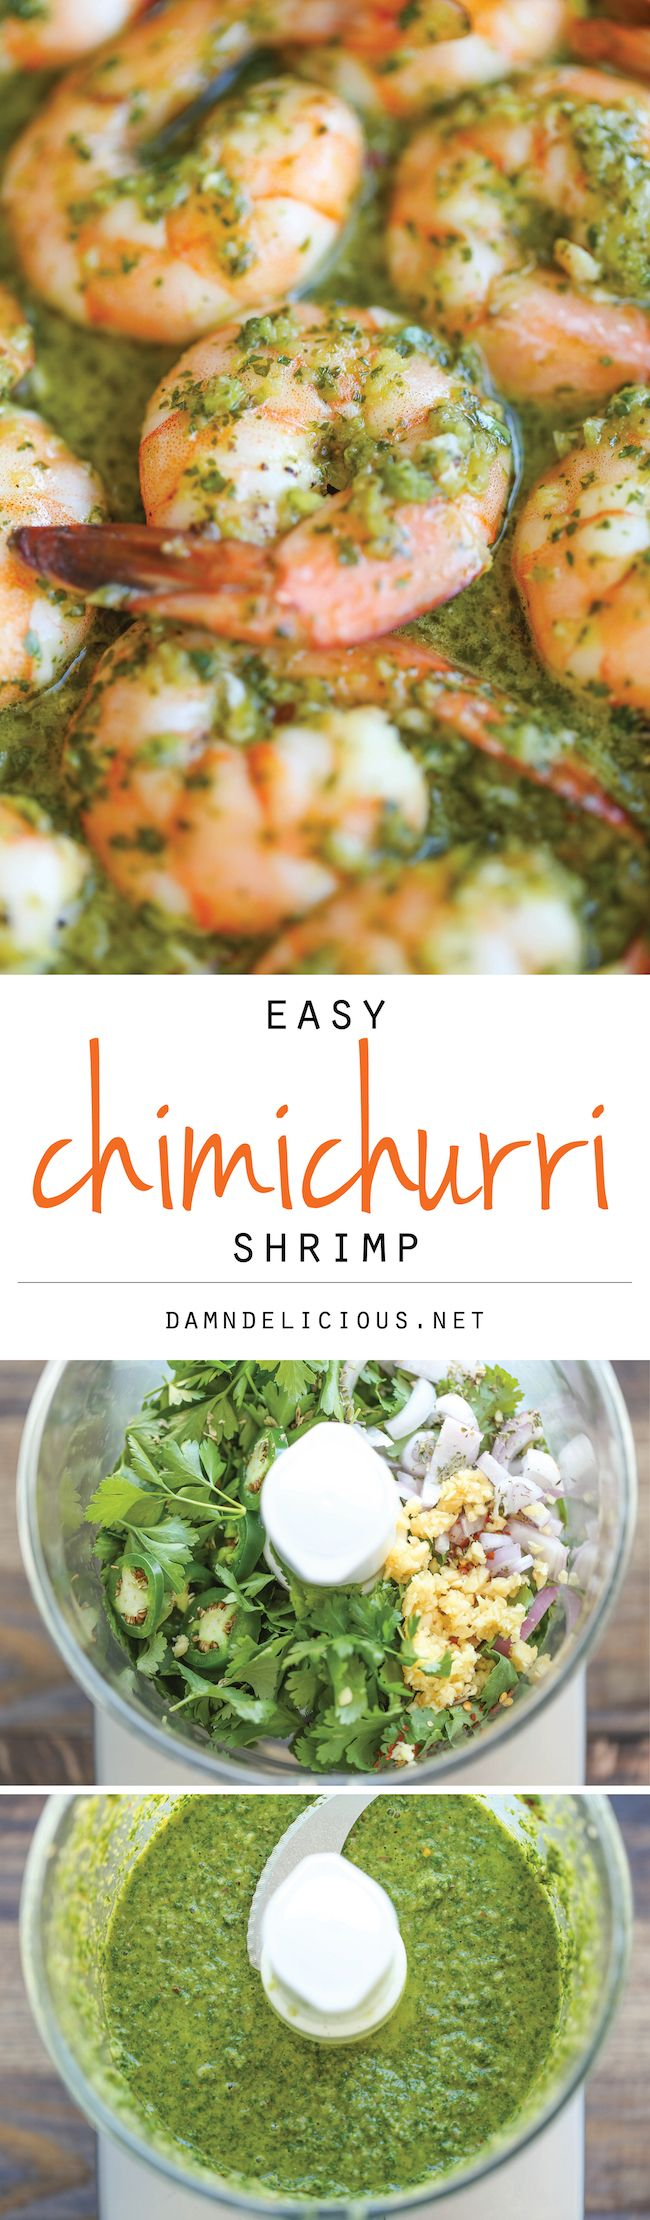 Easy Chimichurri Shrimp - The easiest, most simple 20-minute dish you will ever make. And this can be served either as an appetizer or light dinner! --------> http://tipsalud.com